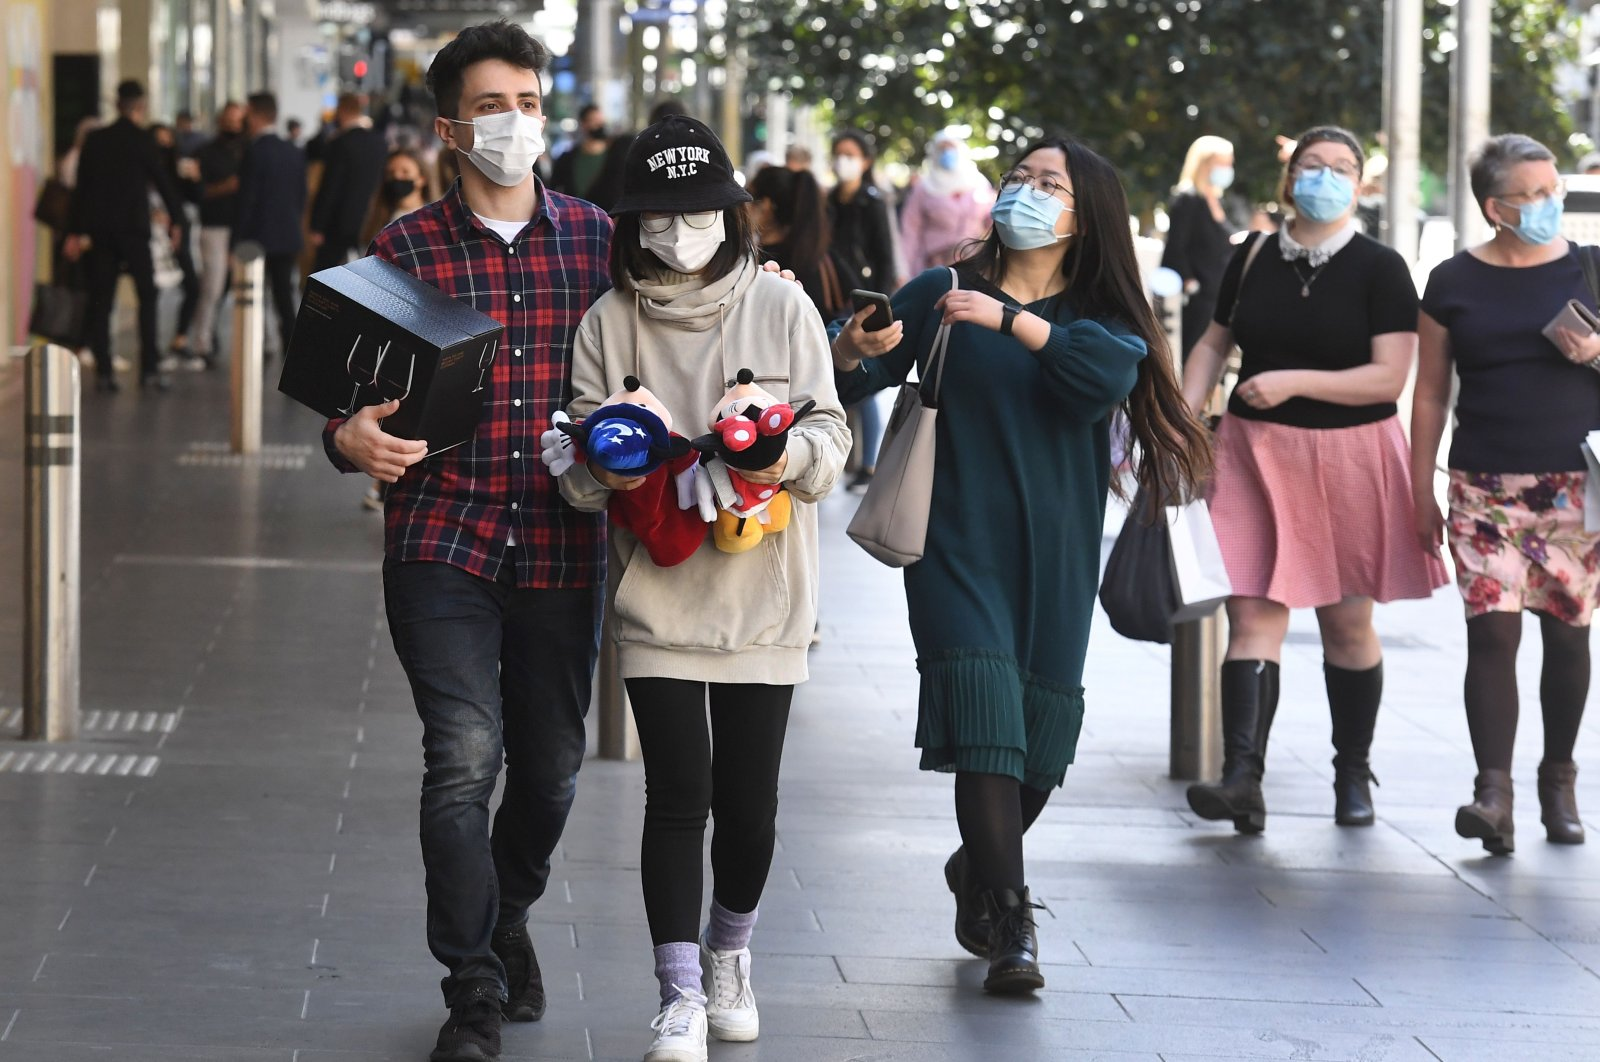 People visit a shopping area after measures to curb the spread of the COVID-19 coronavirus were eased allowing limited numbers of people back into shops, bars, cafes and restaurants in Melbourne, Oct. 28, 2020. (AFP Photo)